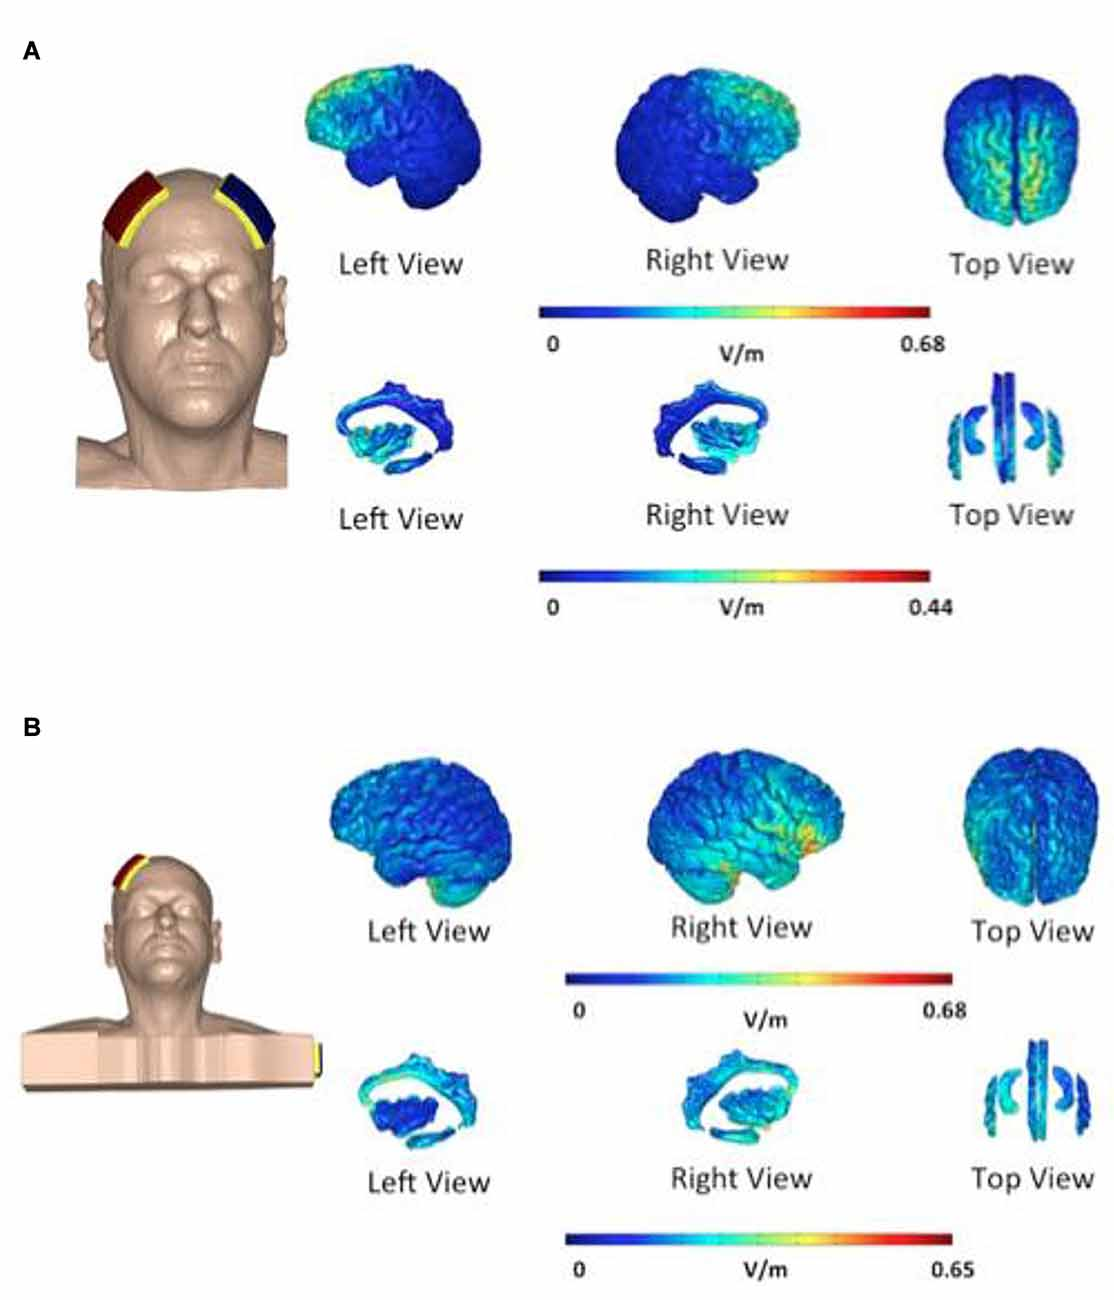 e4eabd37654 Both electrode placements stimulated the right side of the hippocampus